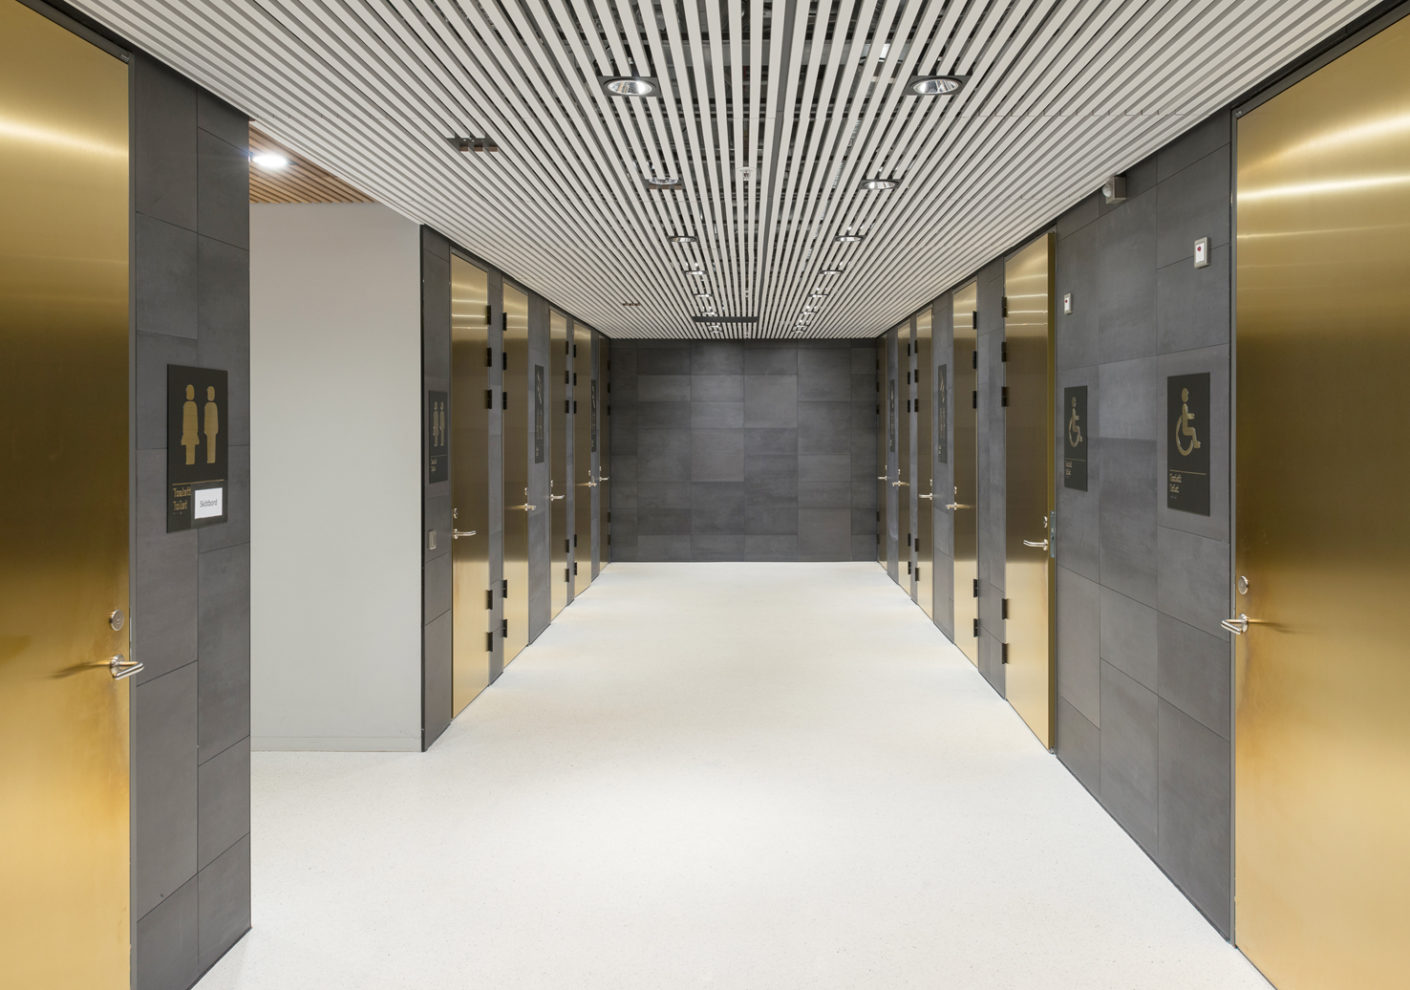 "The tiles ""Terra Tones 216 V"" by Mosa extend the structure of the façade onto the walls of the entrance areas which forms a contrast to the light-colored floors and ceilings."